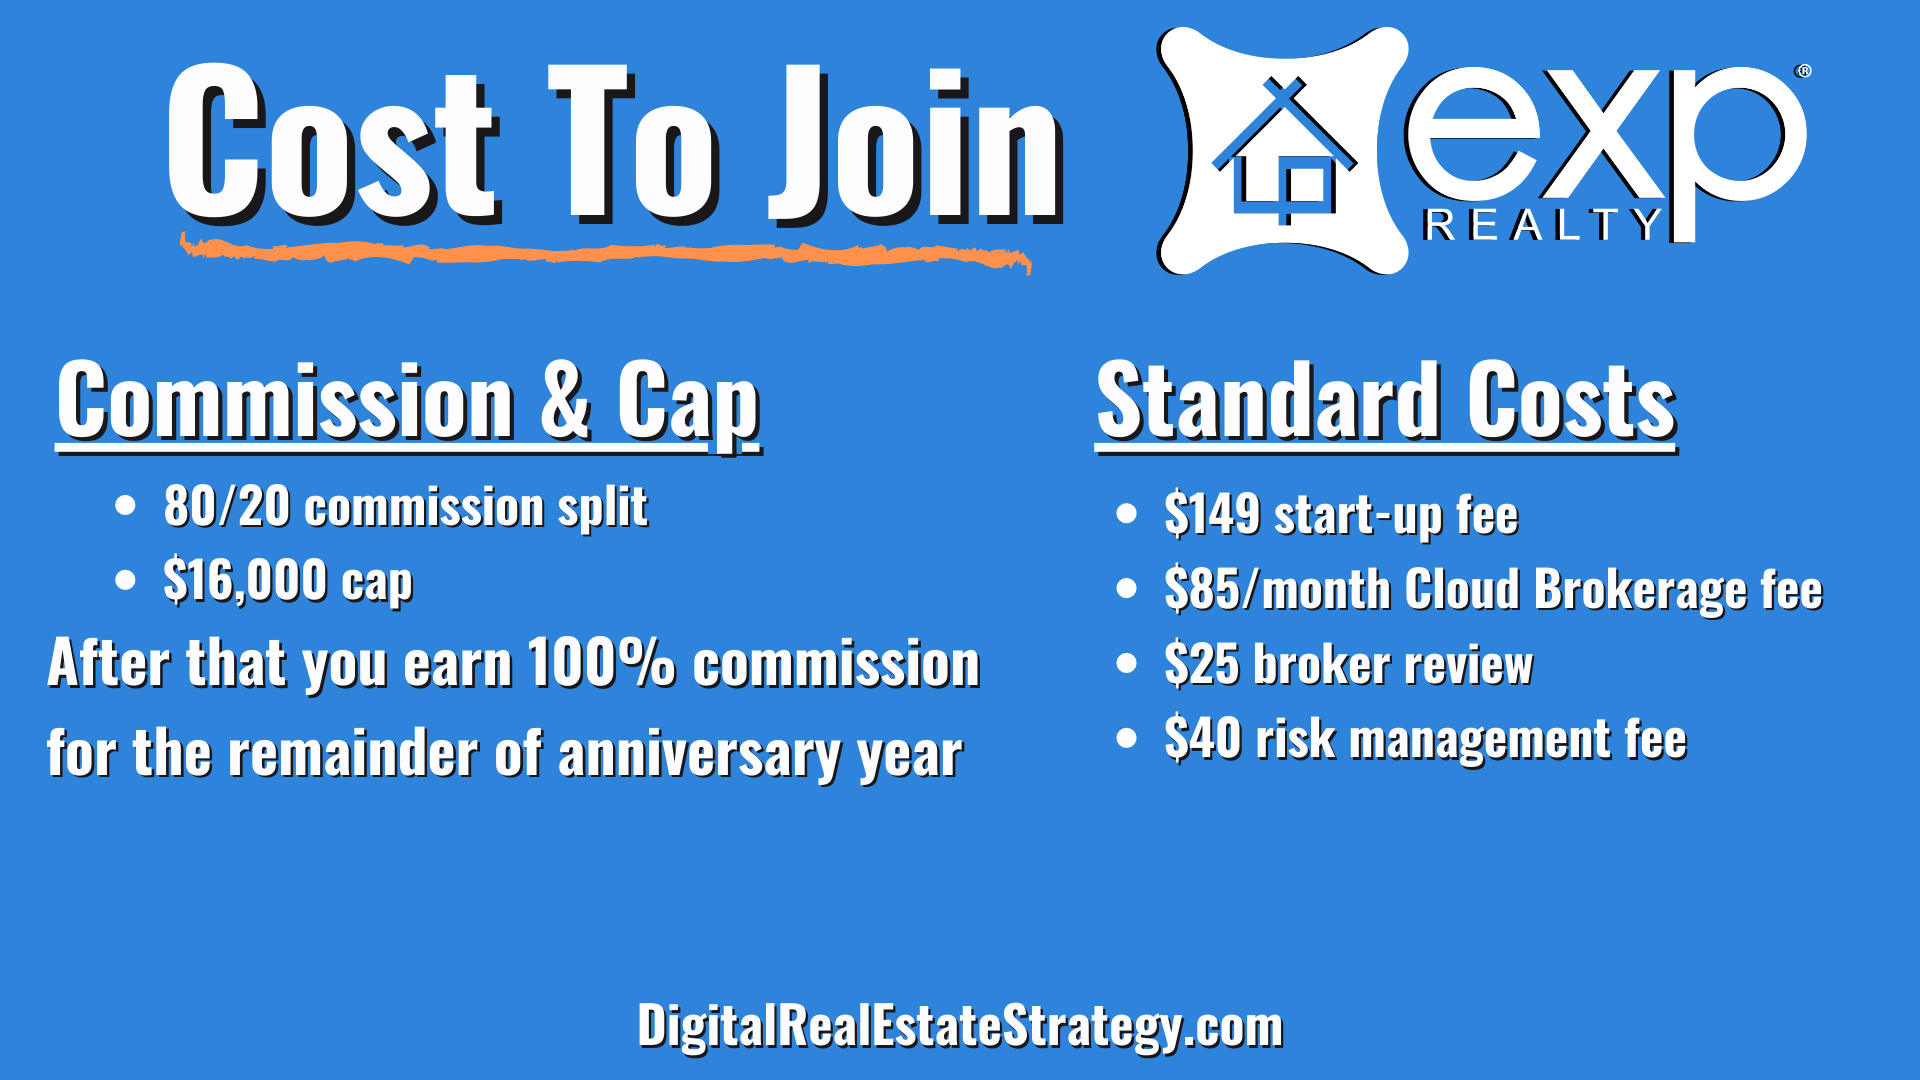 eXp Realty Review - Cost To Join eXp Realty - Jerome Lewis - eXp Realty Philadelphia - Digital Real Estate Strategy.png